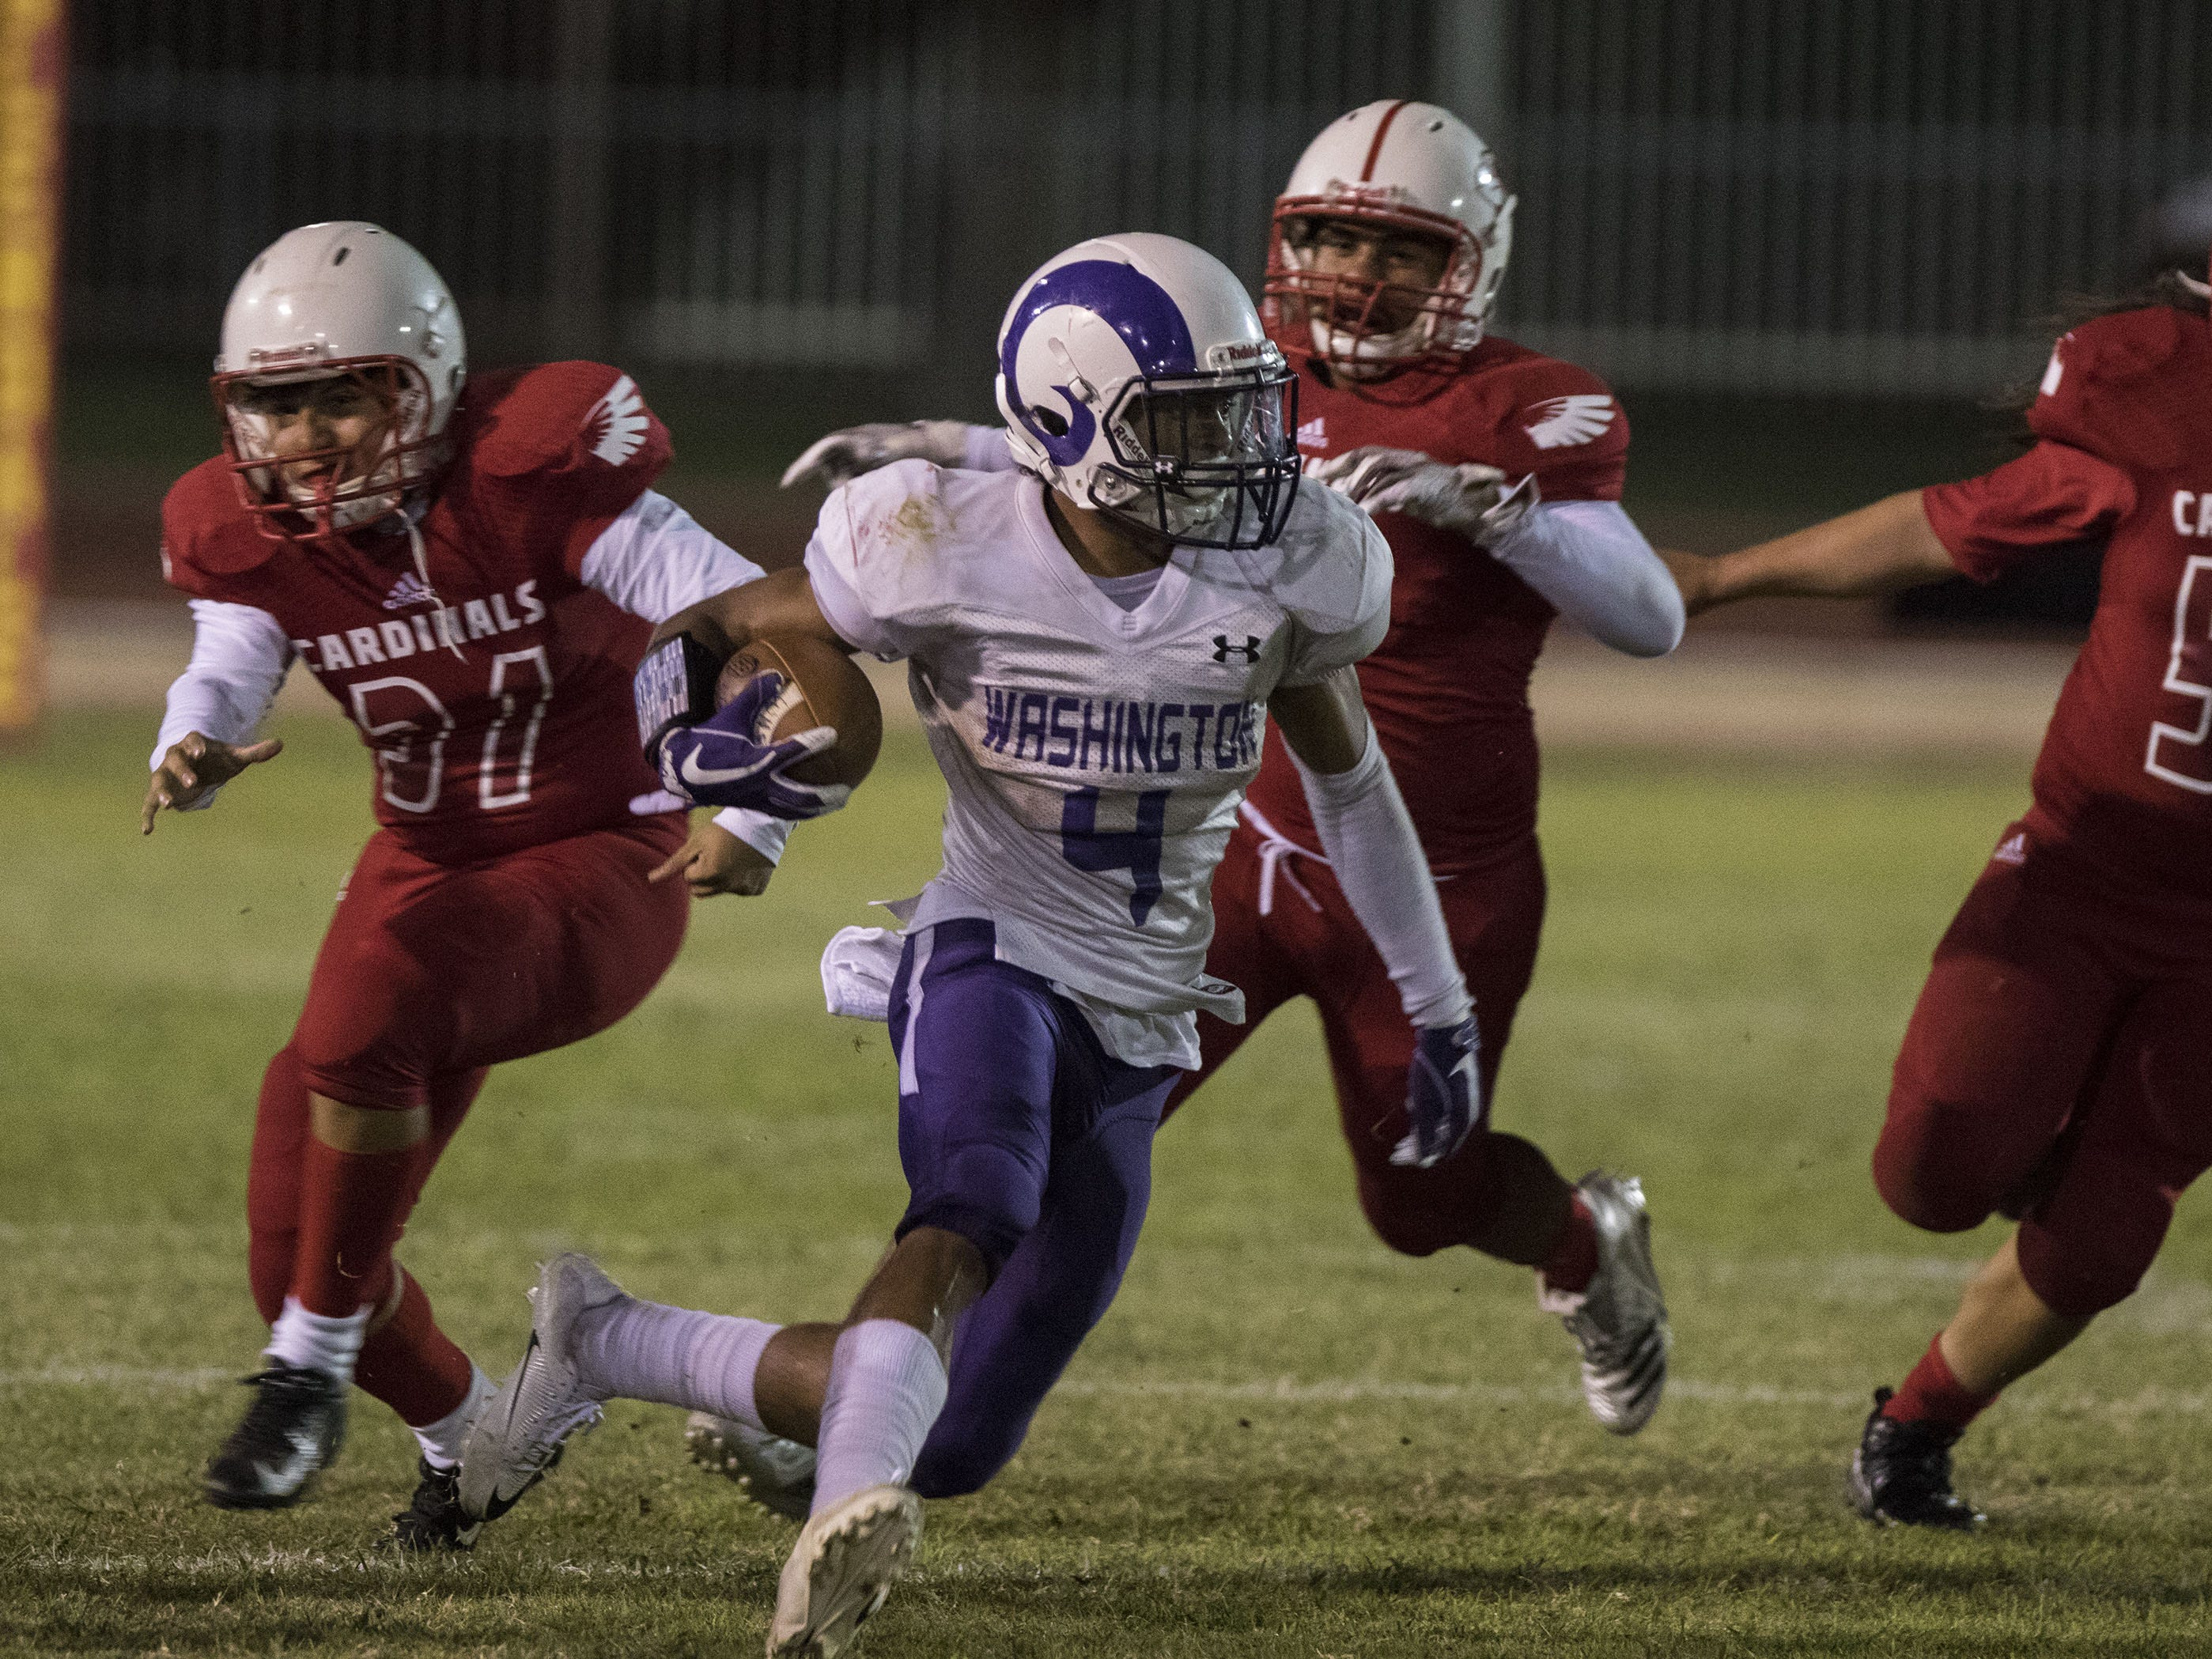 Washington's Jonathan Gruppo finds running room against Glendale's defense during their game in Glendale Friday, Oct. 5, 2018. #azhsfb